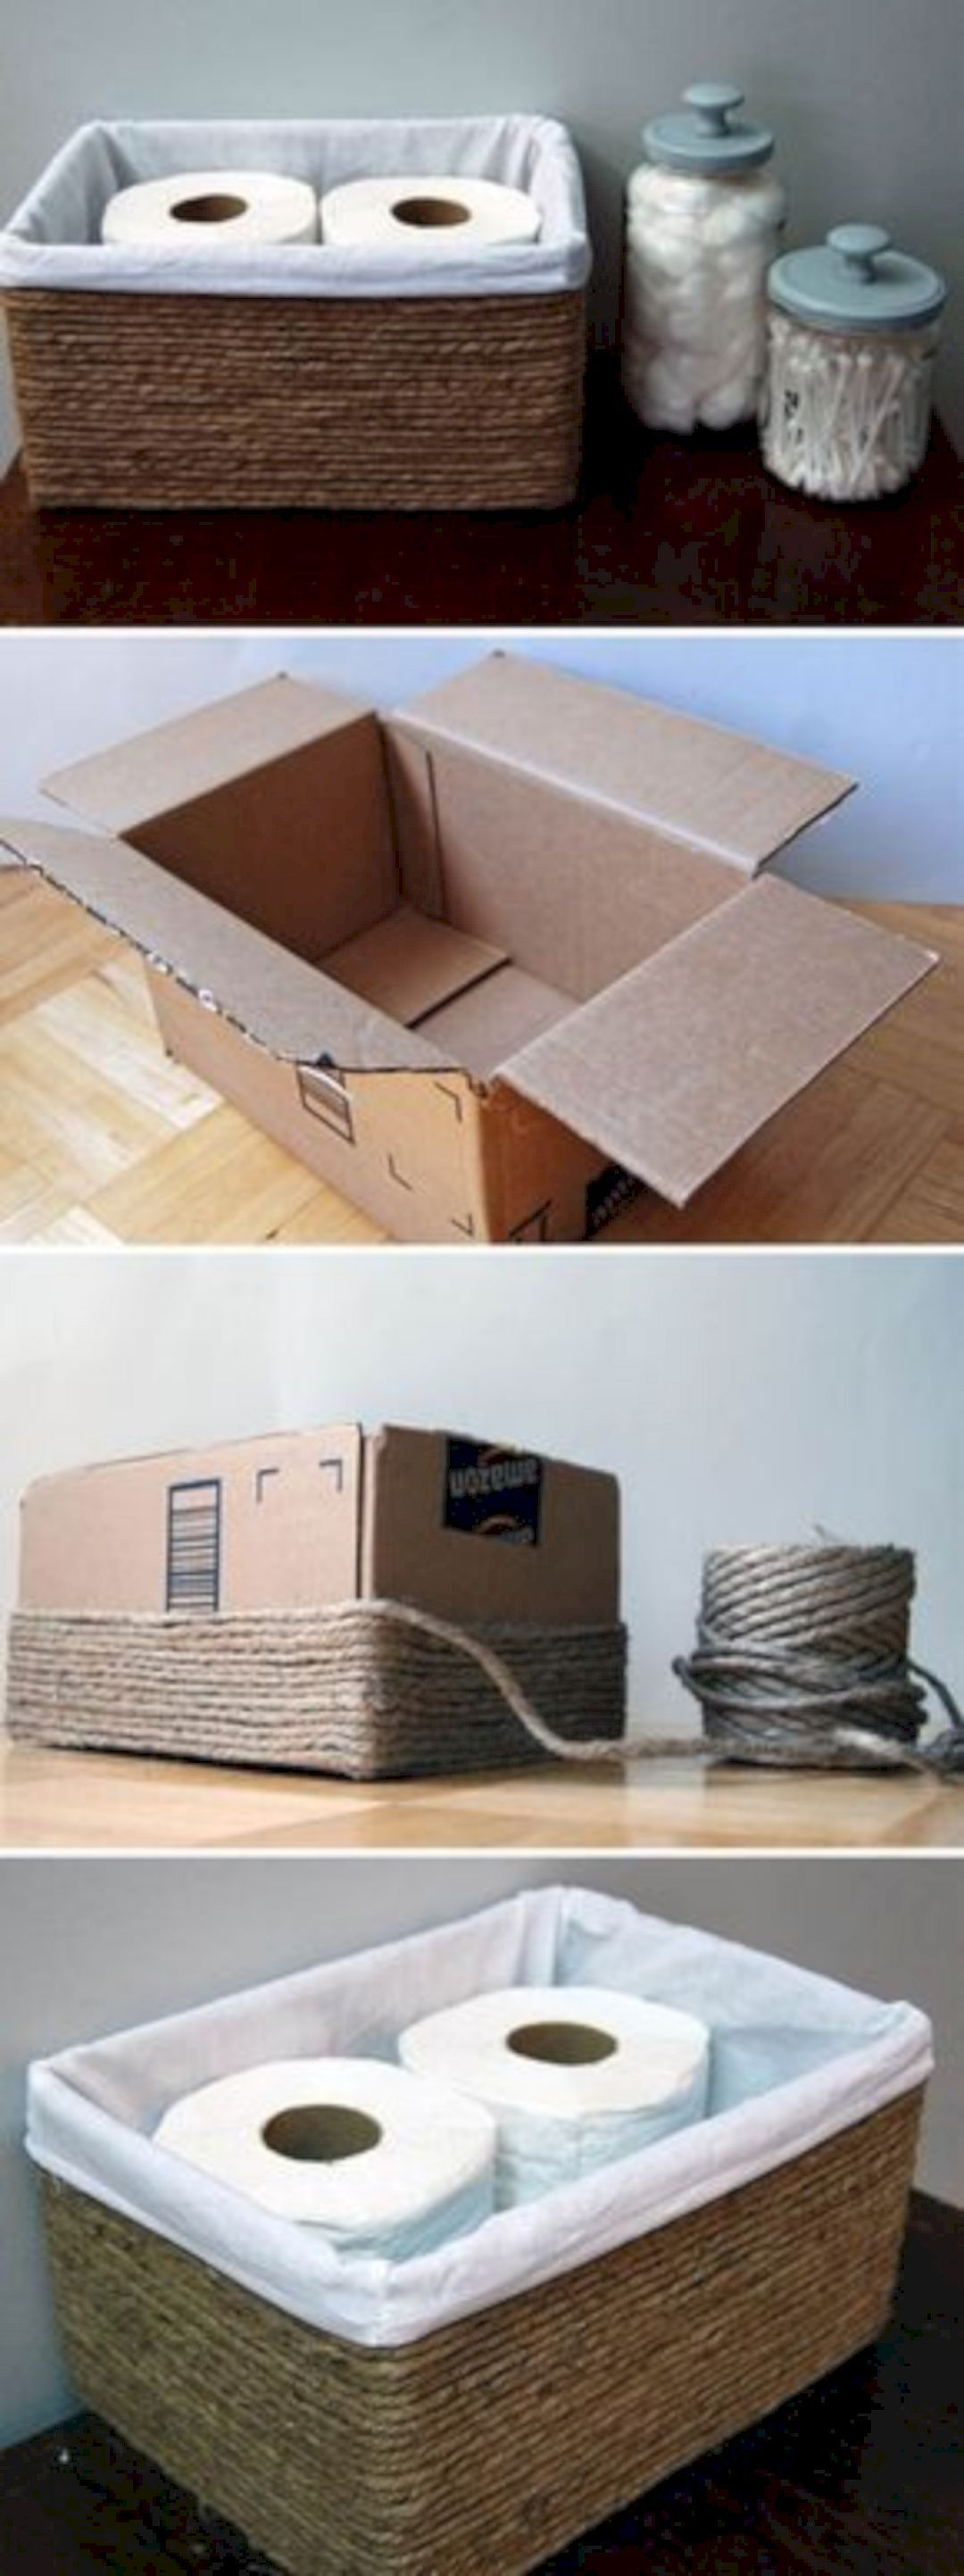 18 Cheap Diy Home Storage Ideas - Diy Home Decor